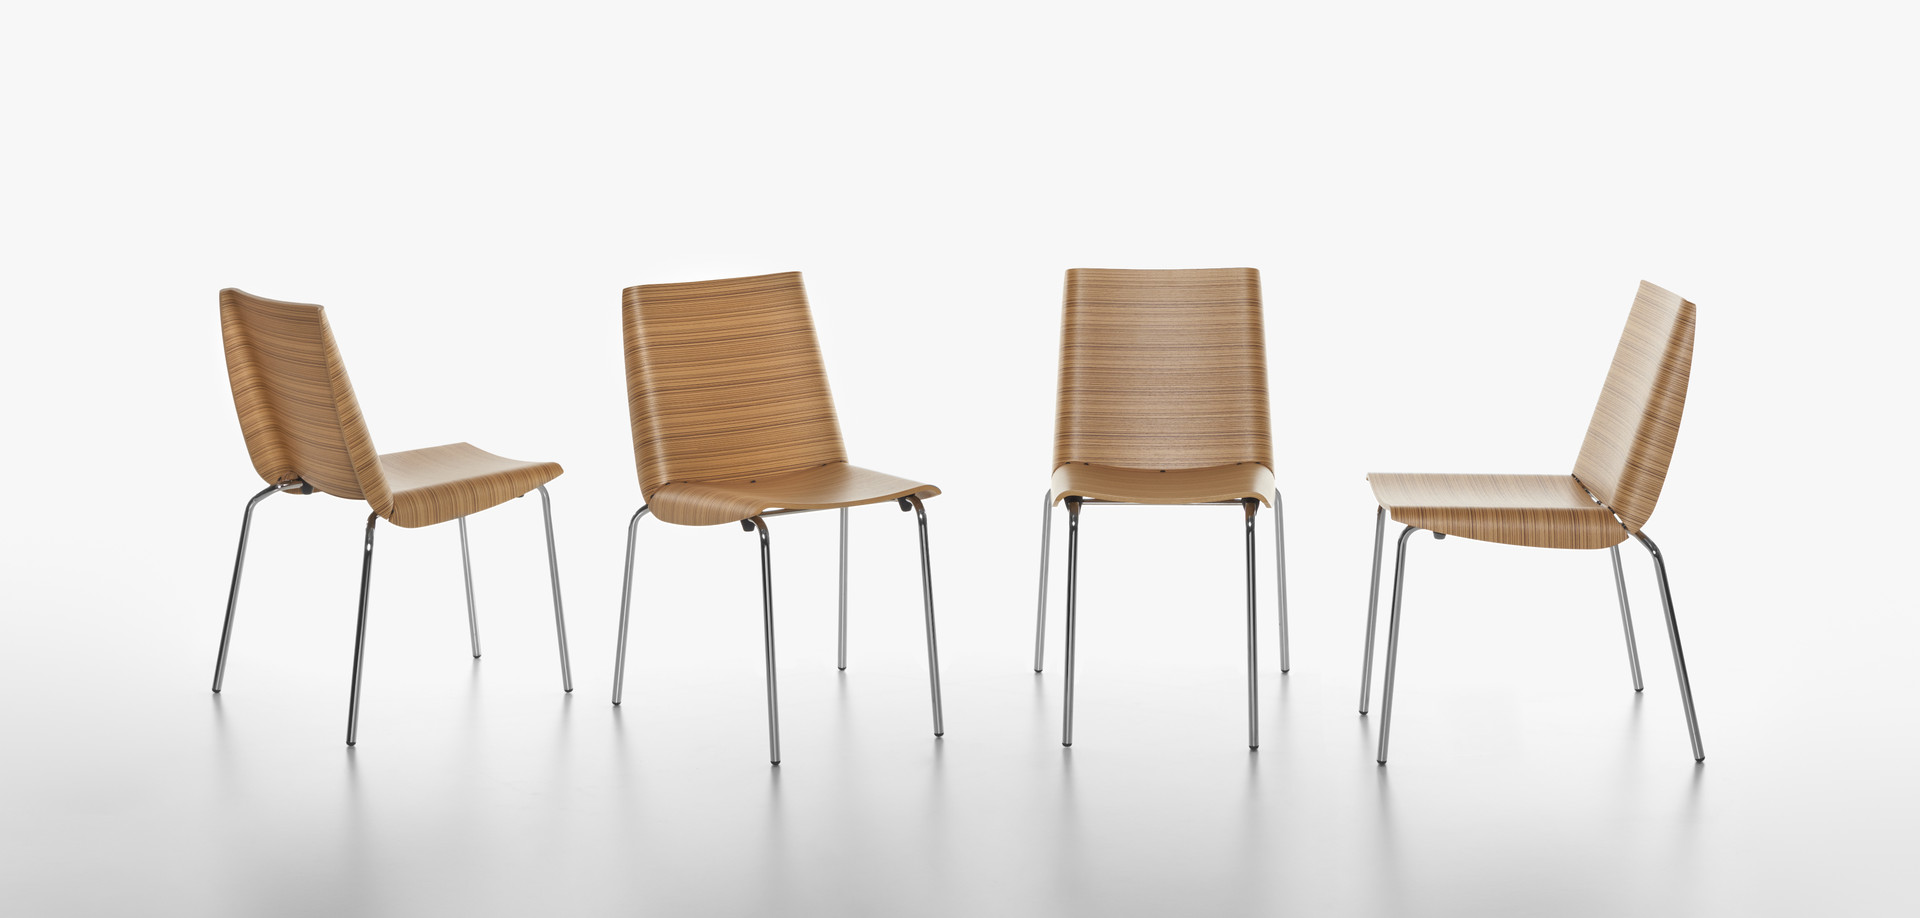 Plank - MILLEFOGLIE chair, chromed metal structure, seat and back in molded plywood veneered with zebrano.